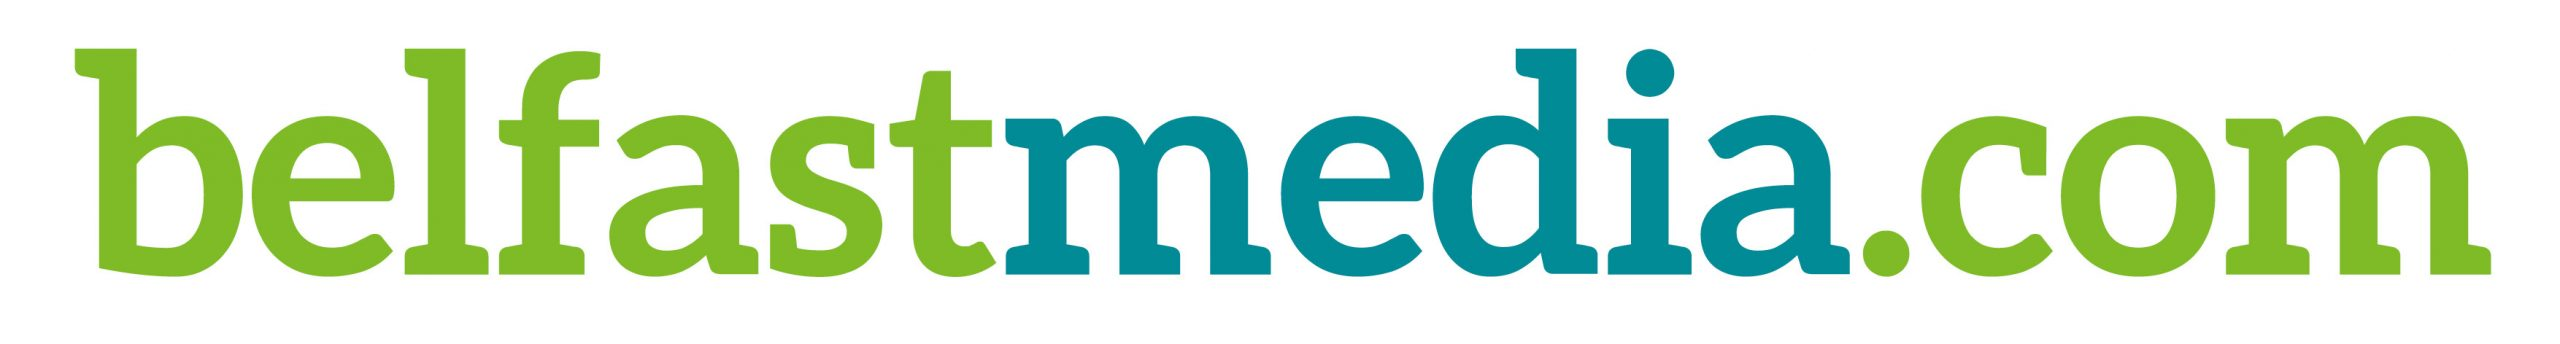 Belfast Media Group logo